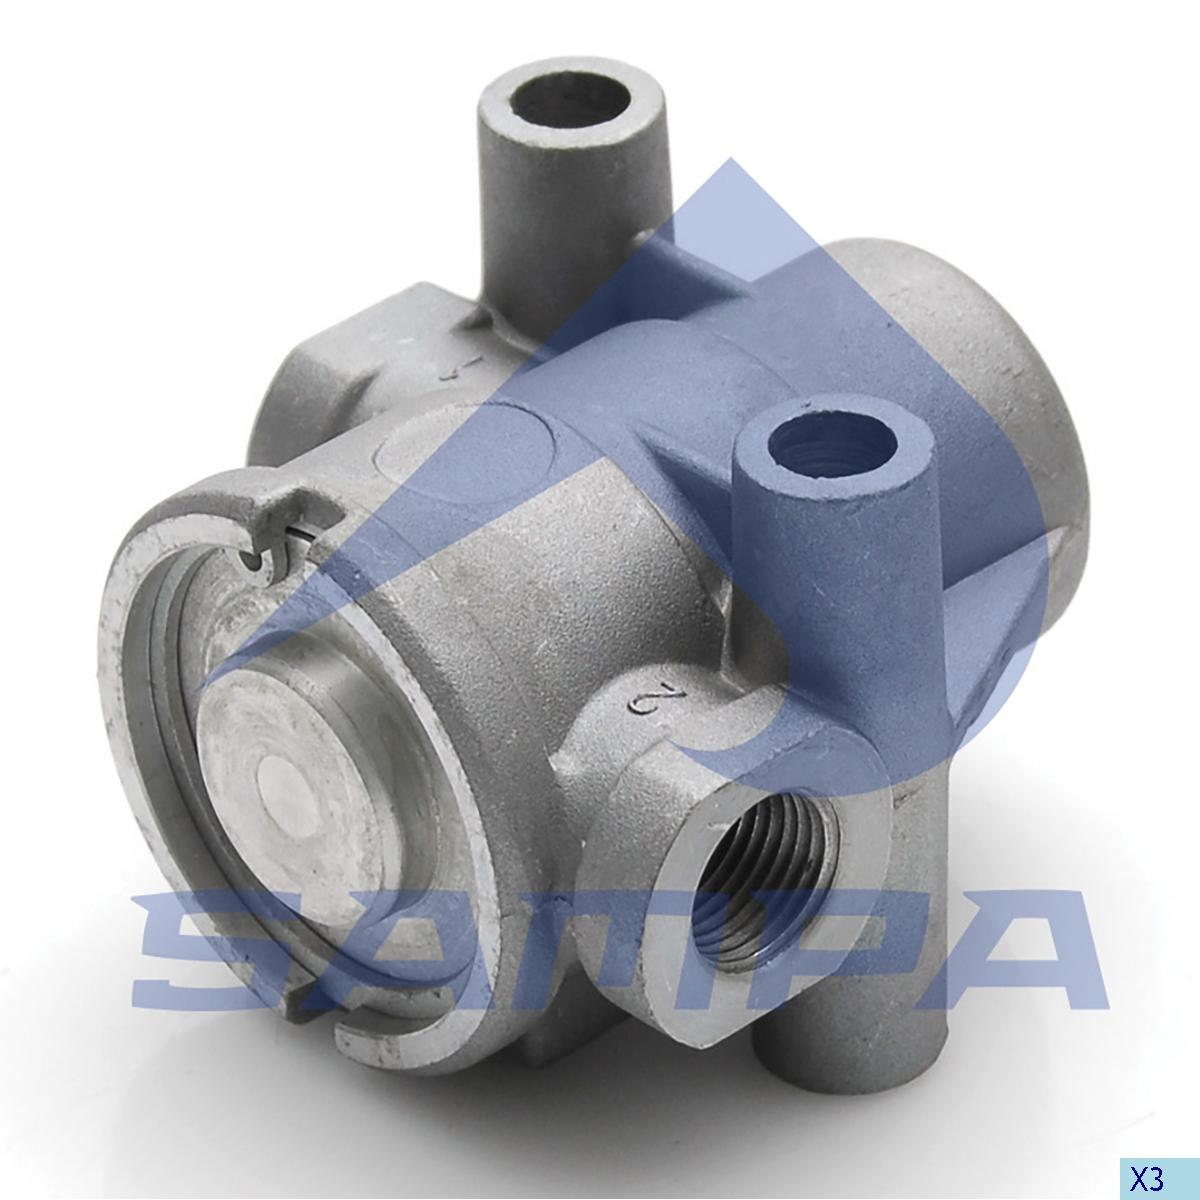 Pressure Control Valve, Iveco, Compressed Air System